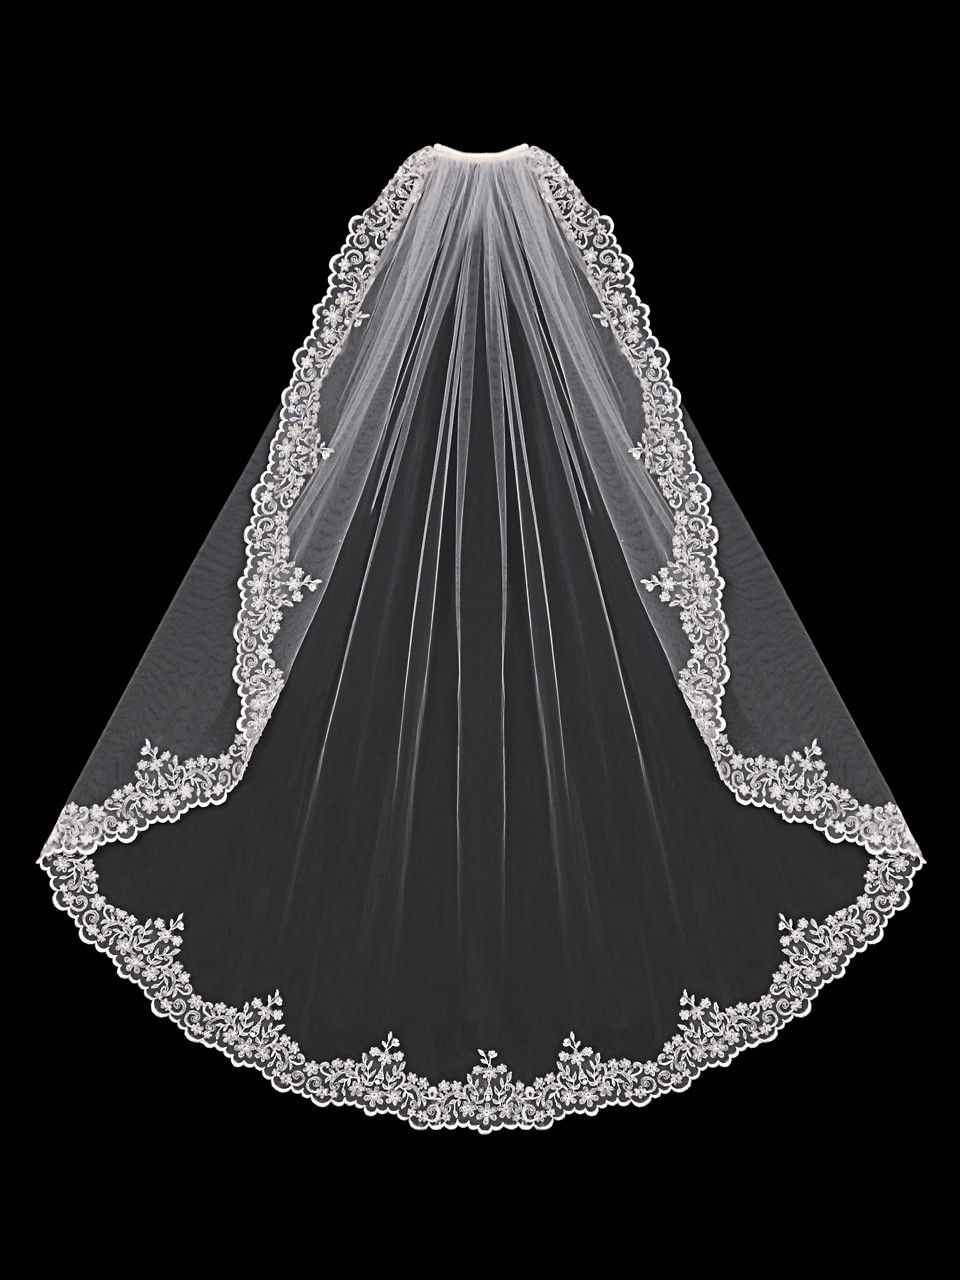 Bridal Veil of Silver Embroidered Lace with Beads and Rhinestones | Wedding  veils lace, Fingertip length wedding veil, Bridal veil